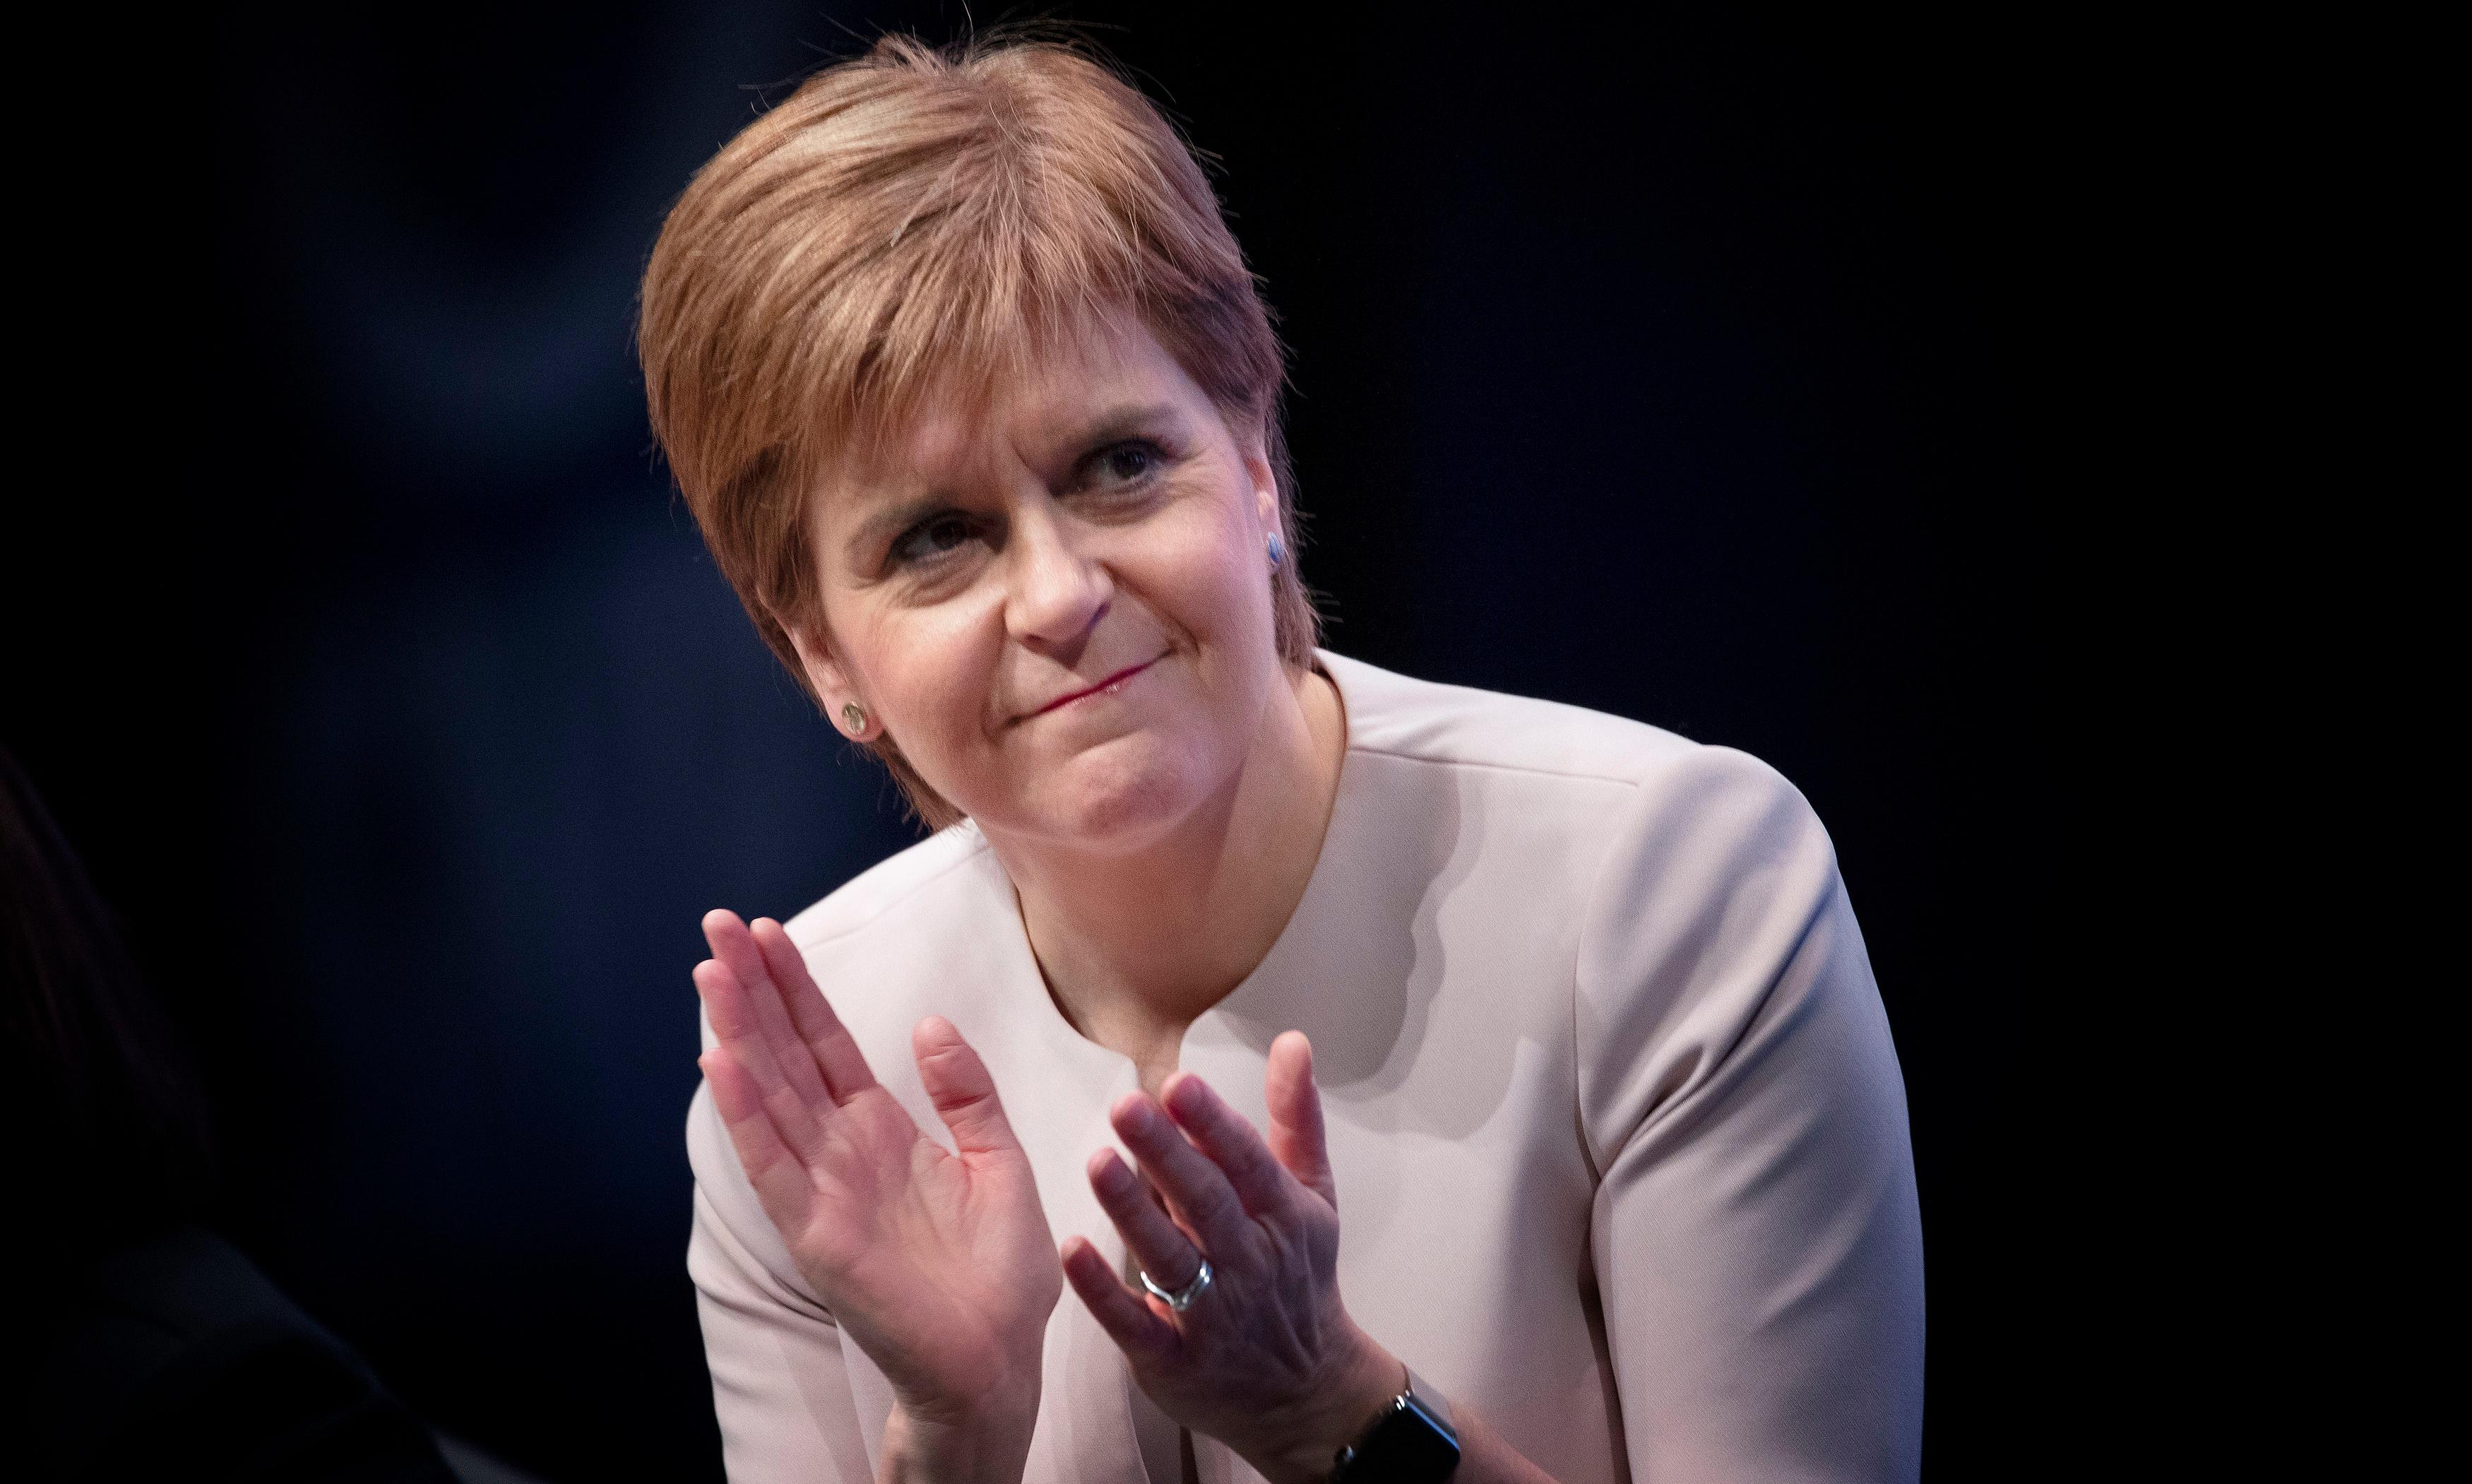 Nicola Sturgeon to attack 'so-called strongman leaders'